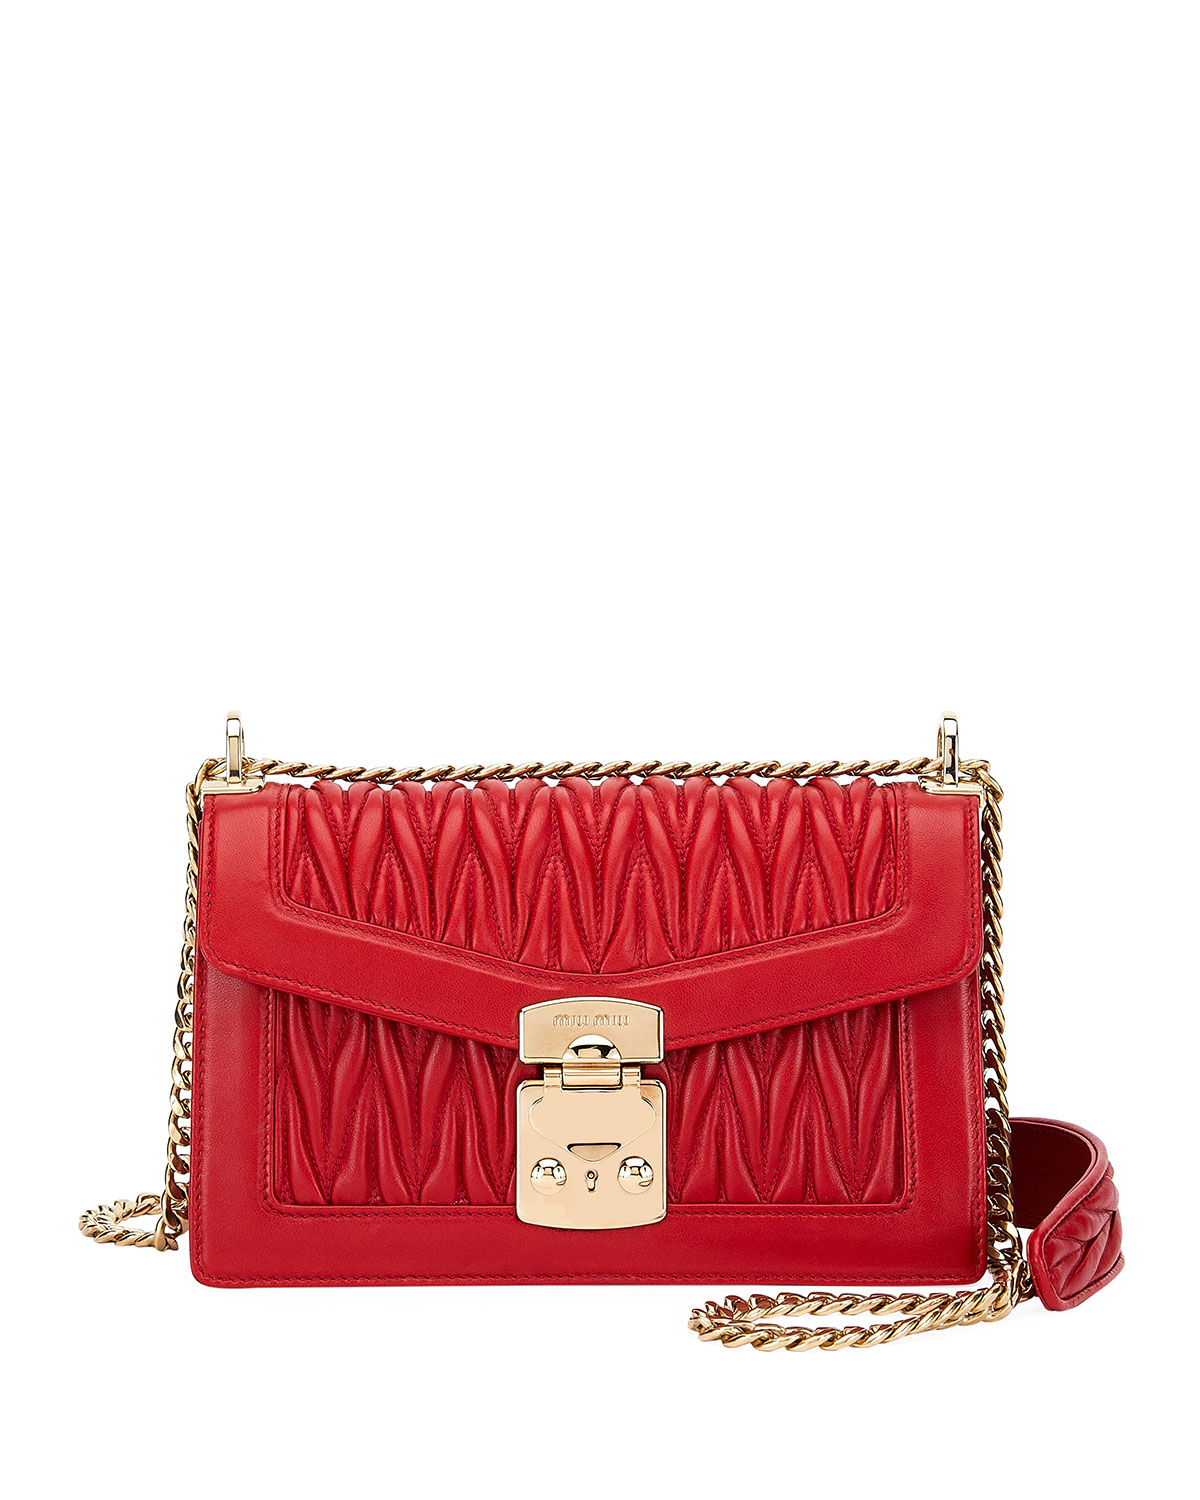 Miu Miu Miu Confidential Matelasse Leather Flap Shoulder Bag ... 4a6c80f49580e